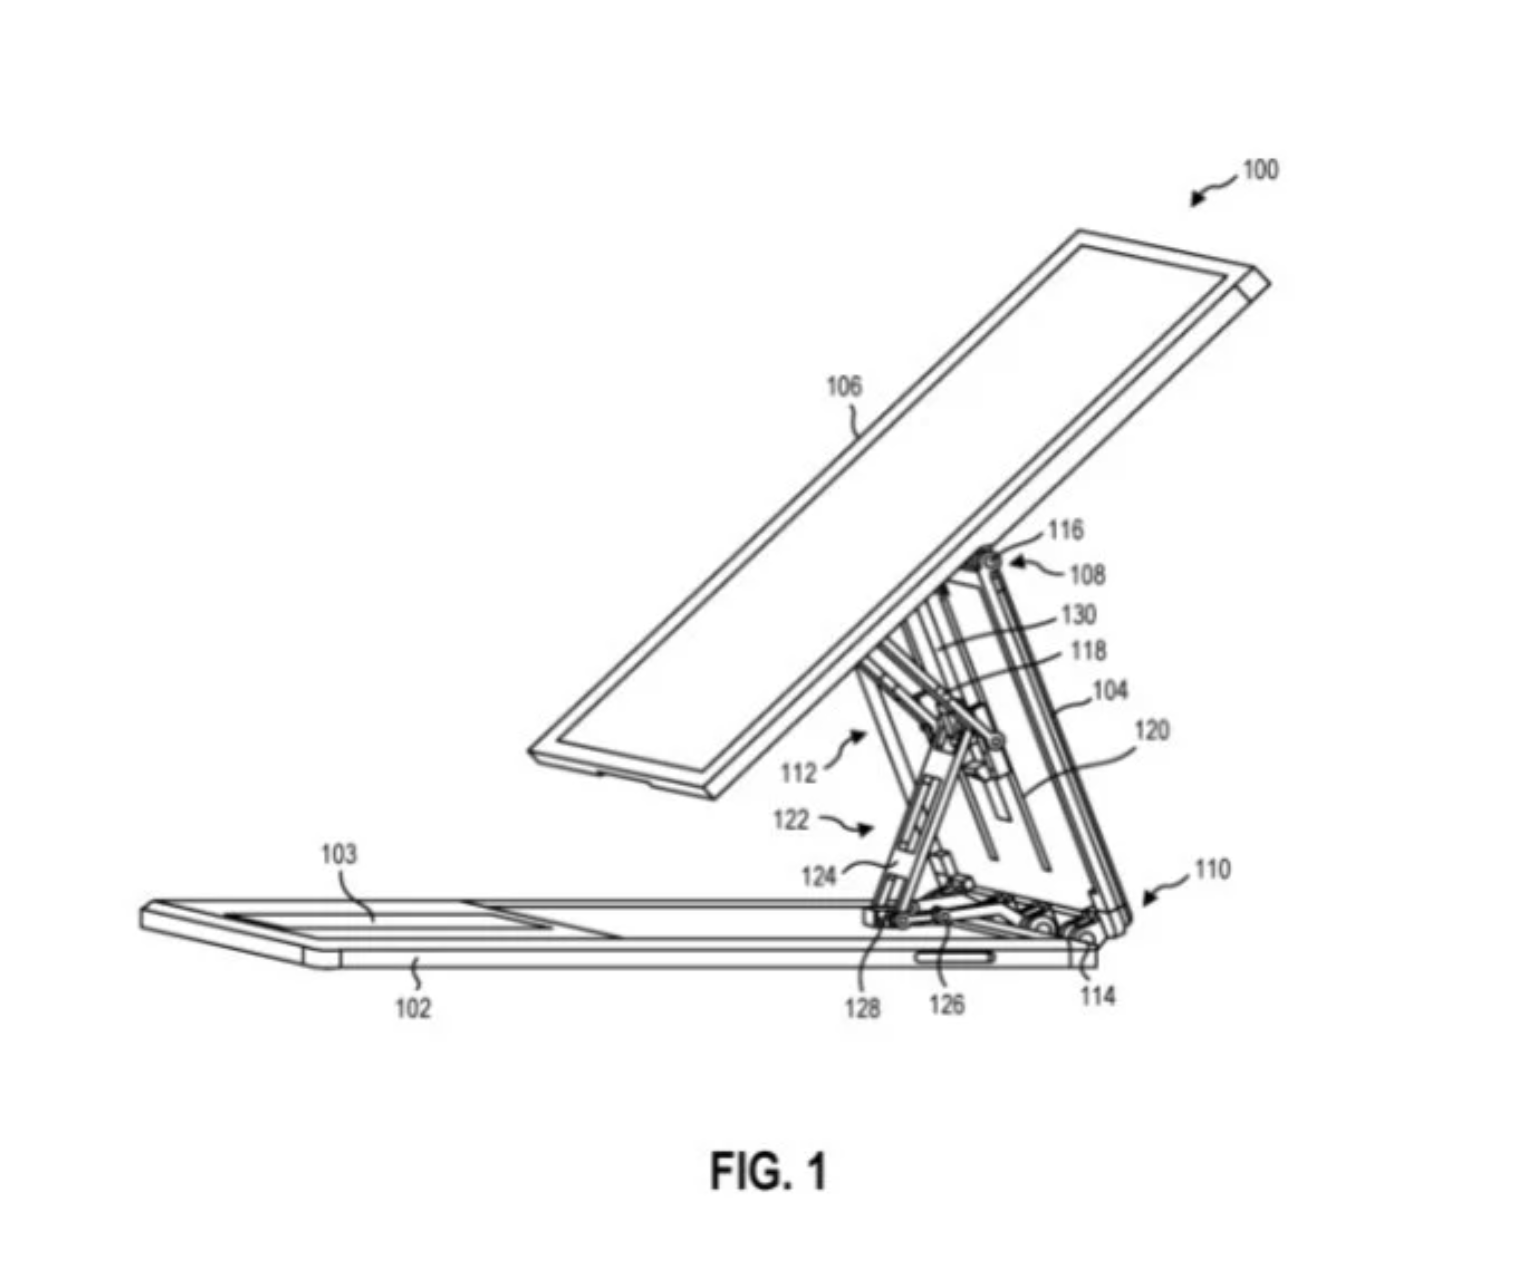 Patent Showing potential Surface Book 3 successor